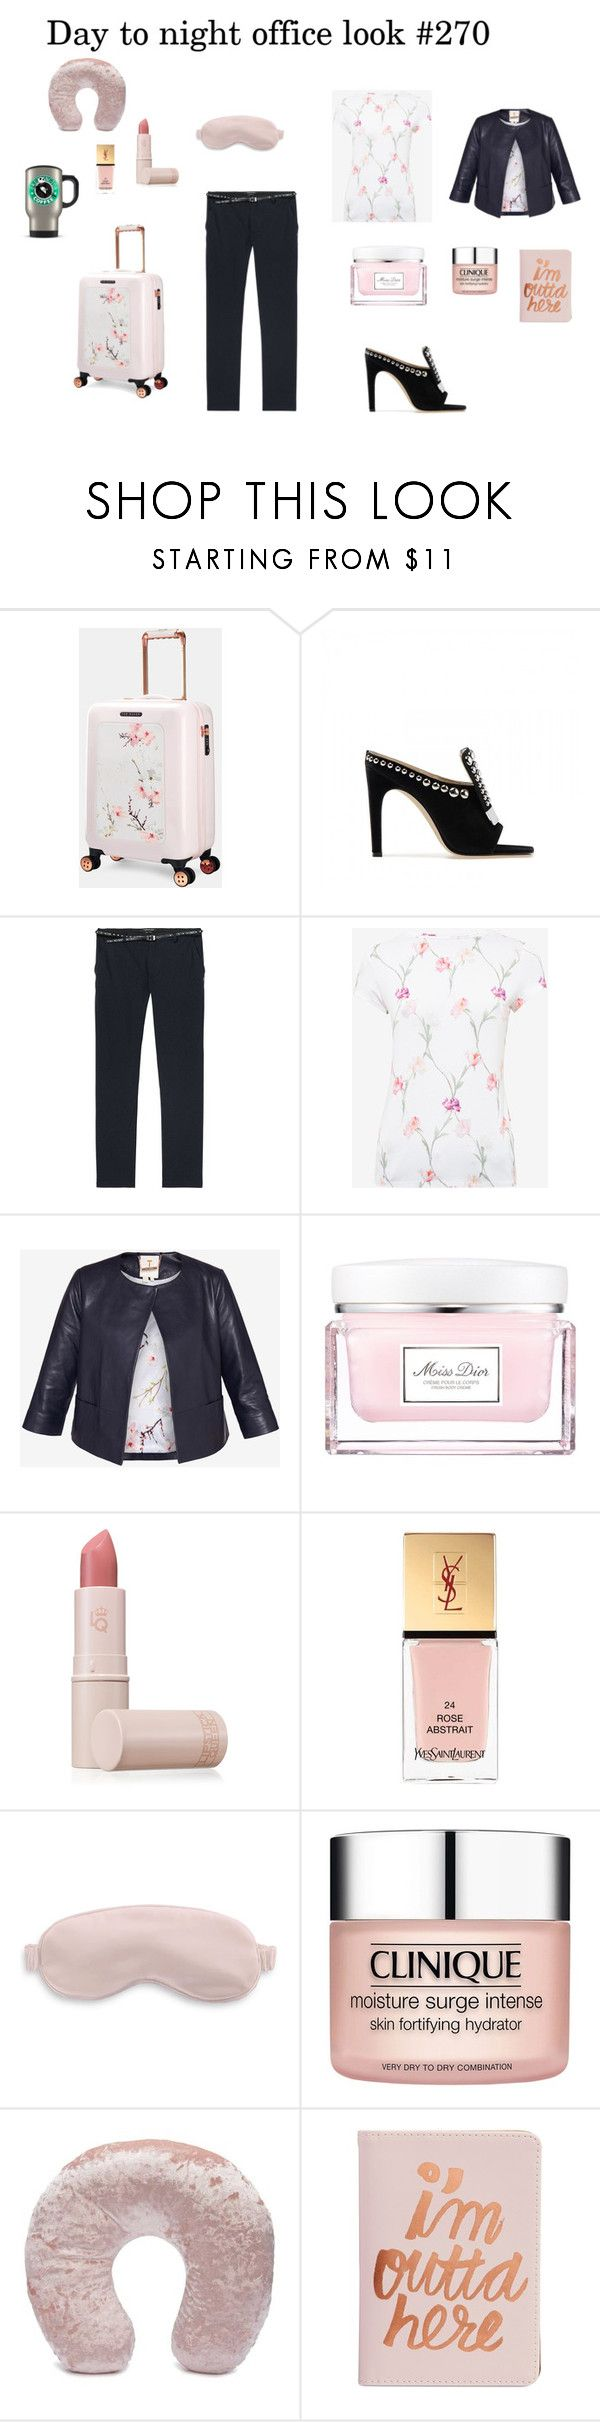 """""""Day to night office look #270"""" by modaelista ❤ liked on Polyvore featuring Ted Baker, Christian Dior, Lipstick Queen, Yves Saint Laurent, Slip, Clinique, Forever 21 and ban.do"""